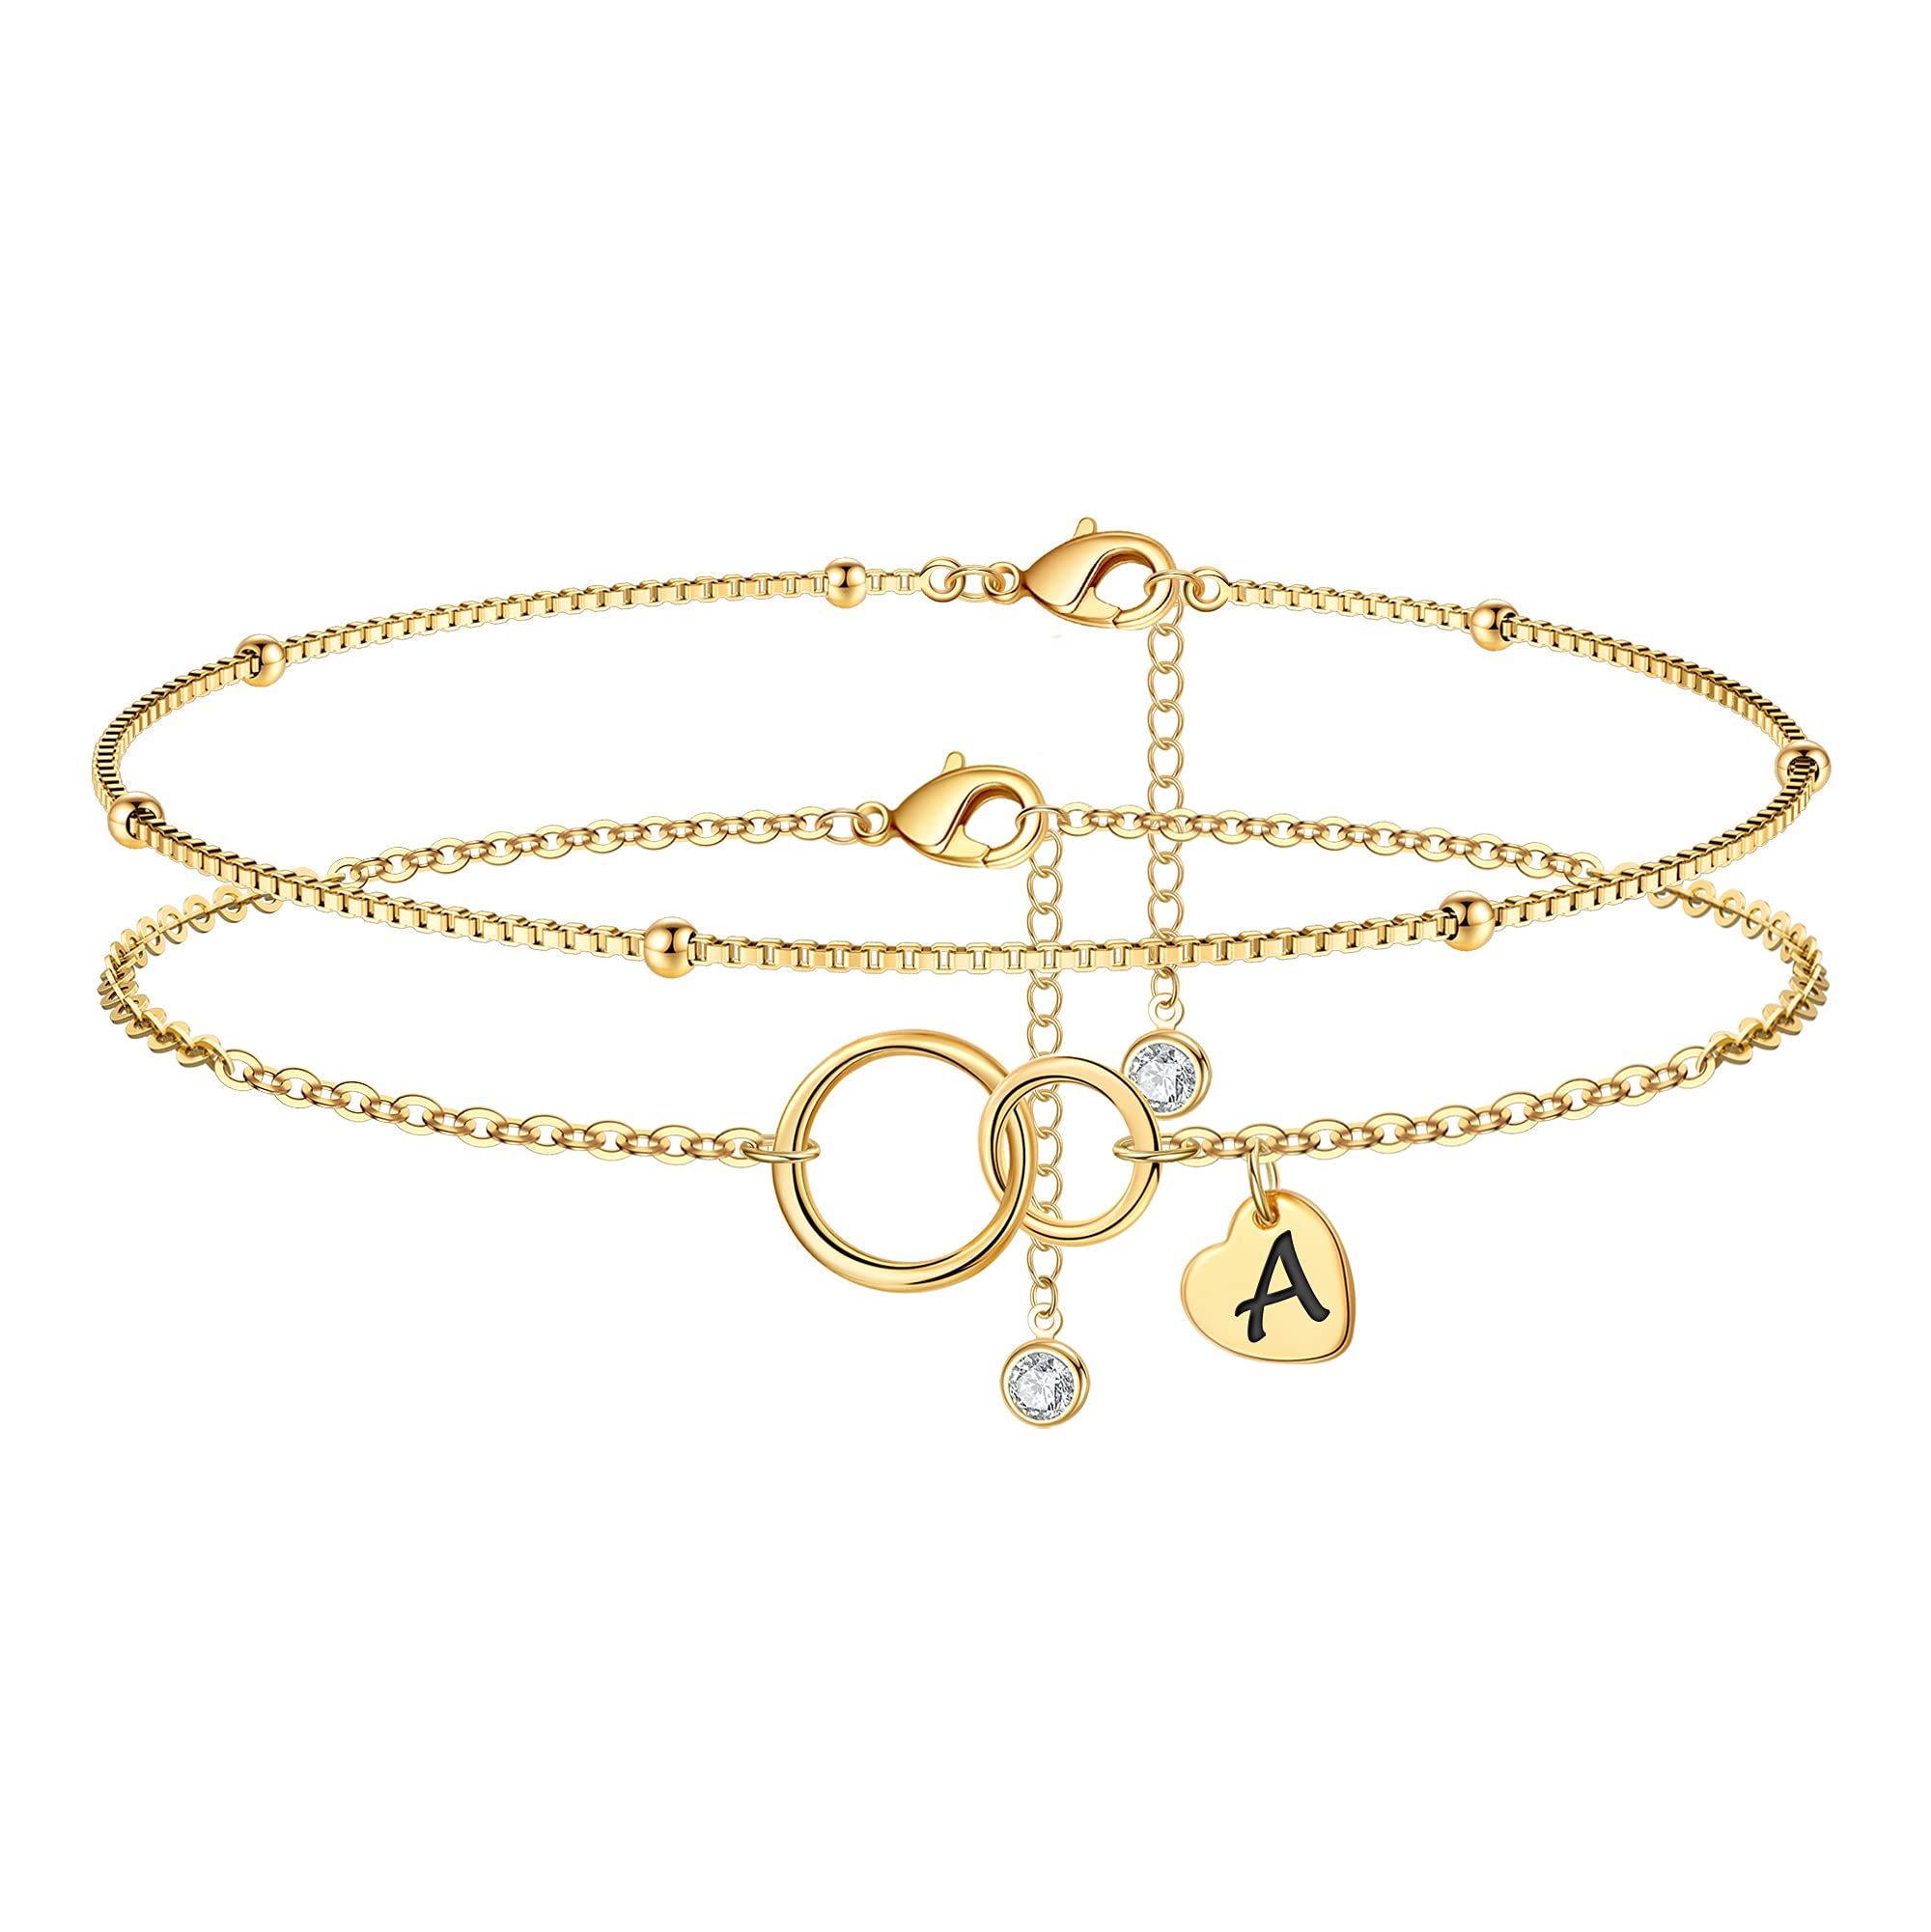 Infinity Circles Ankle Bracelets for Women 14K Gold Plated Handmade Dainty Box